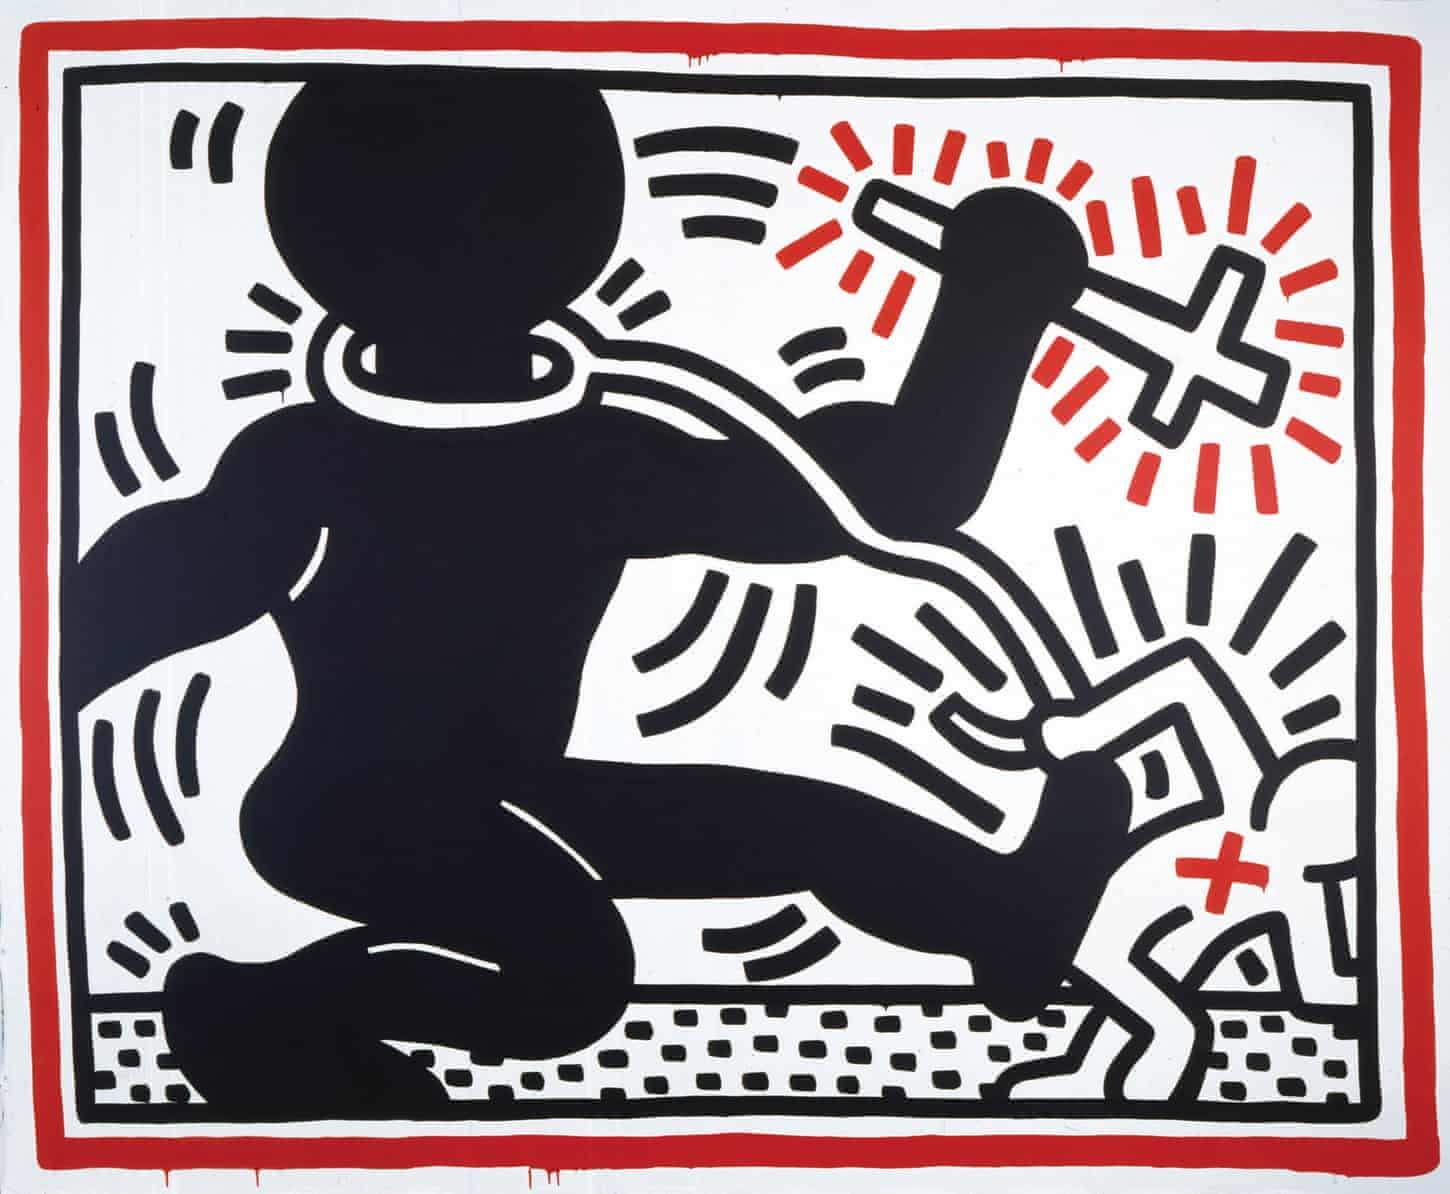 Keith Haring review – jubilance and beauty from the message man